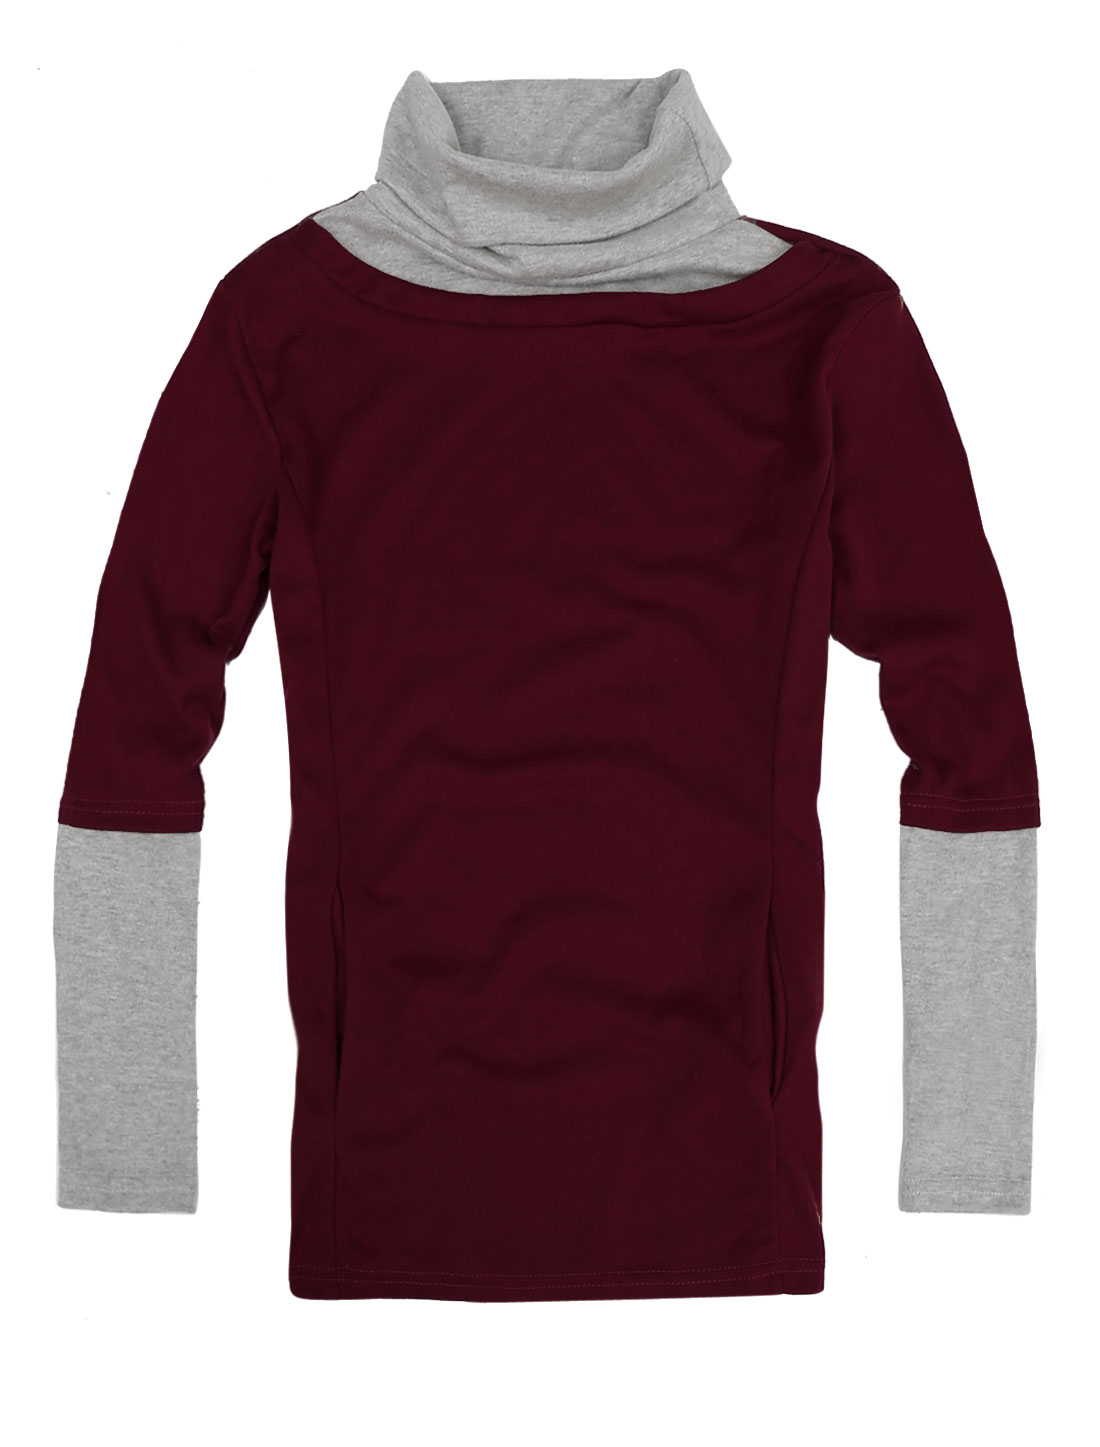 Women Turtle Neck Long Sleeved Elastic Casual Shirt Burgundy Light Gray XS